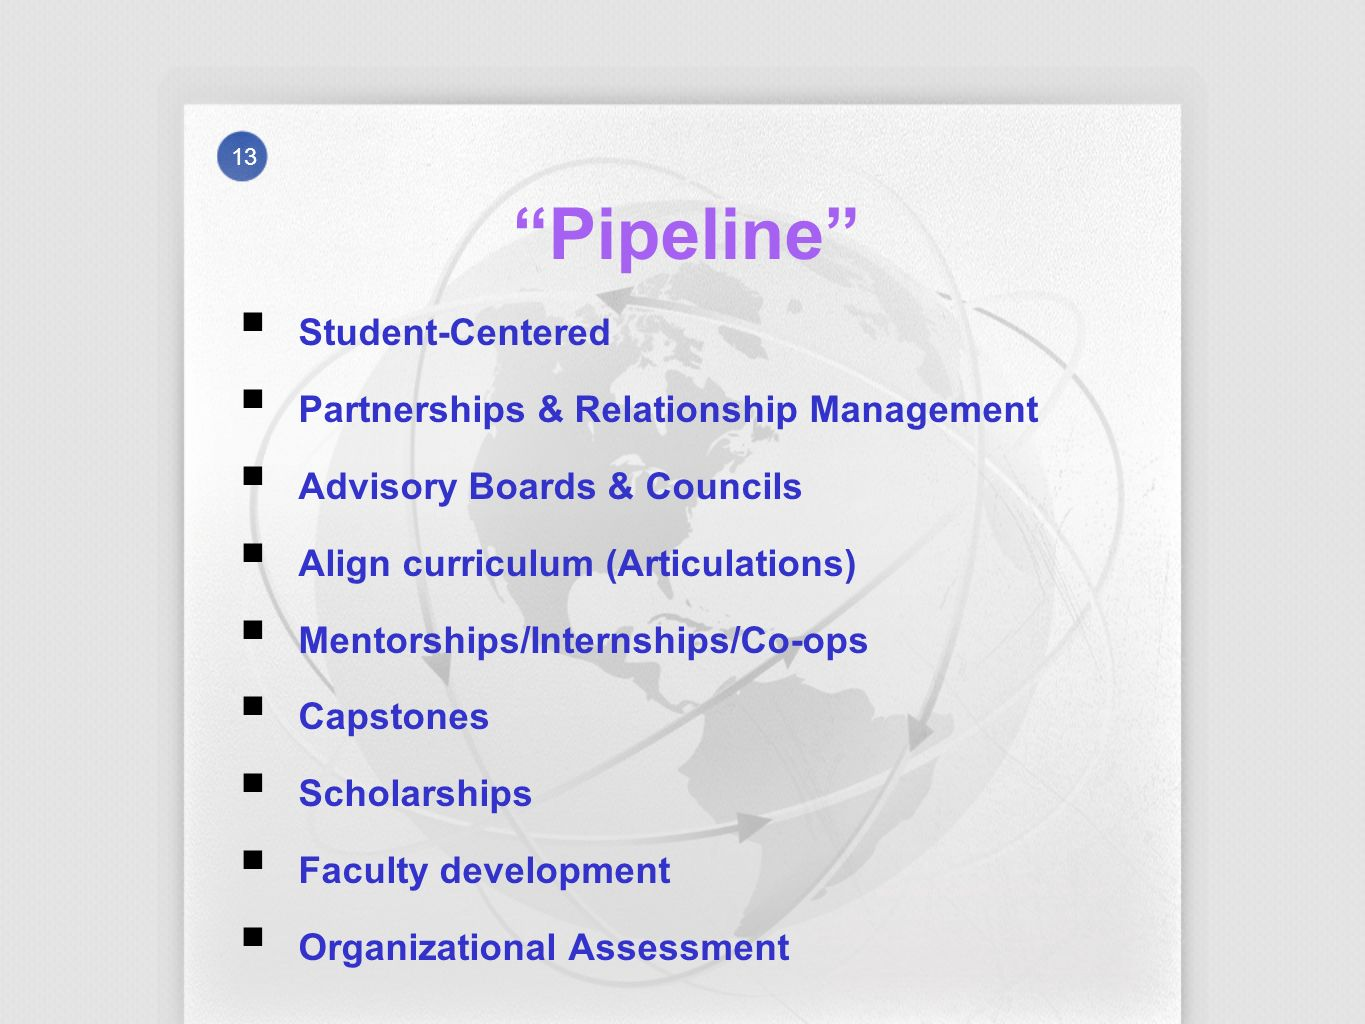 Pipeline Student-Centered Partnerships & Relationship Management Advisory Boards & Councils Align curriculum (Articulations) Mentorships/Internships/Co-ops Capstones Scholarships Faculty development Organizational Assessment 13